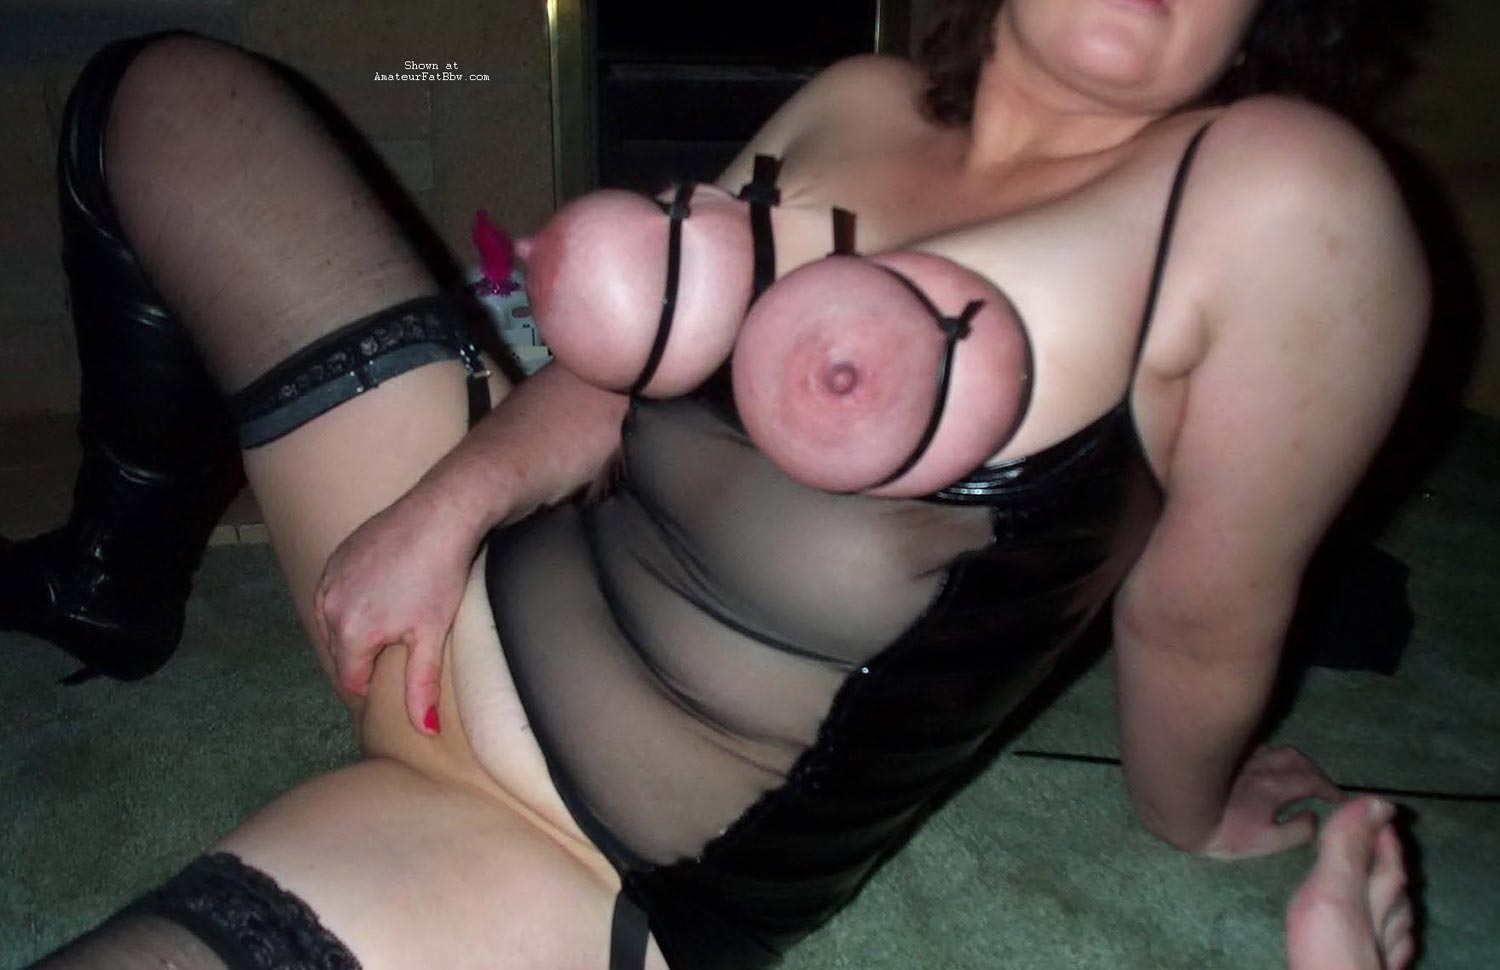 Teen girls that are hot wet and horny